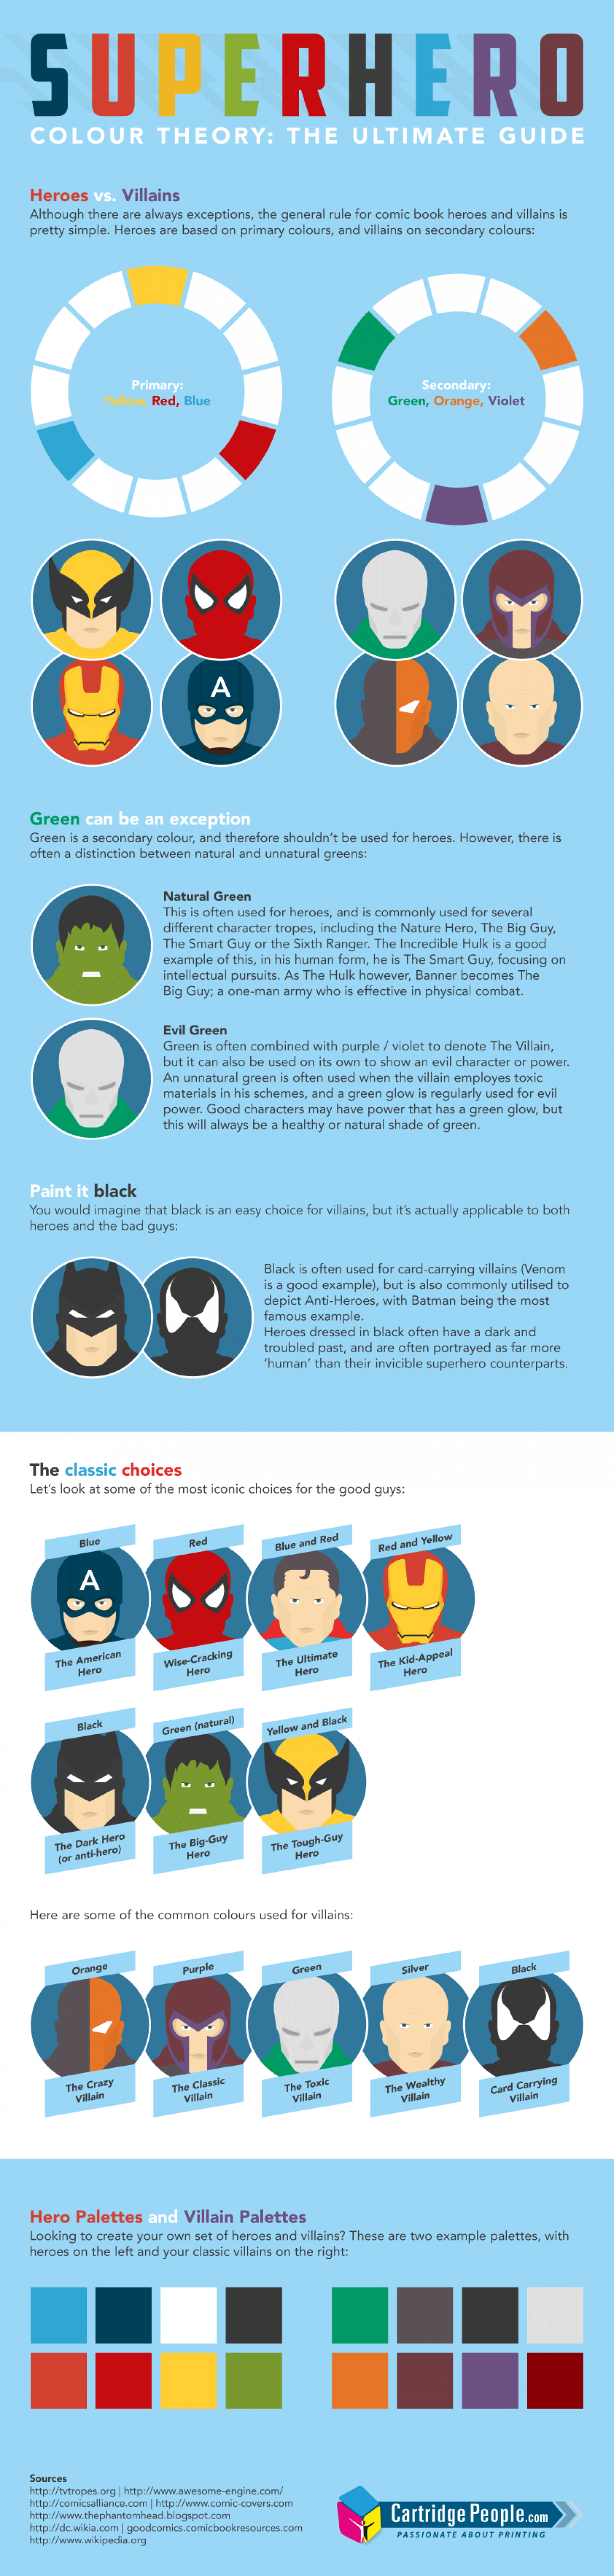 Superhero Colour Theory: The Ultimate Guide Infographic